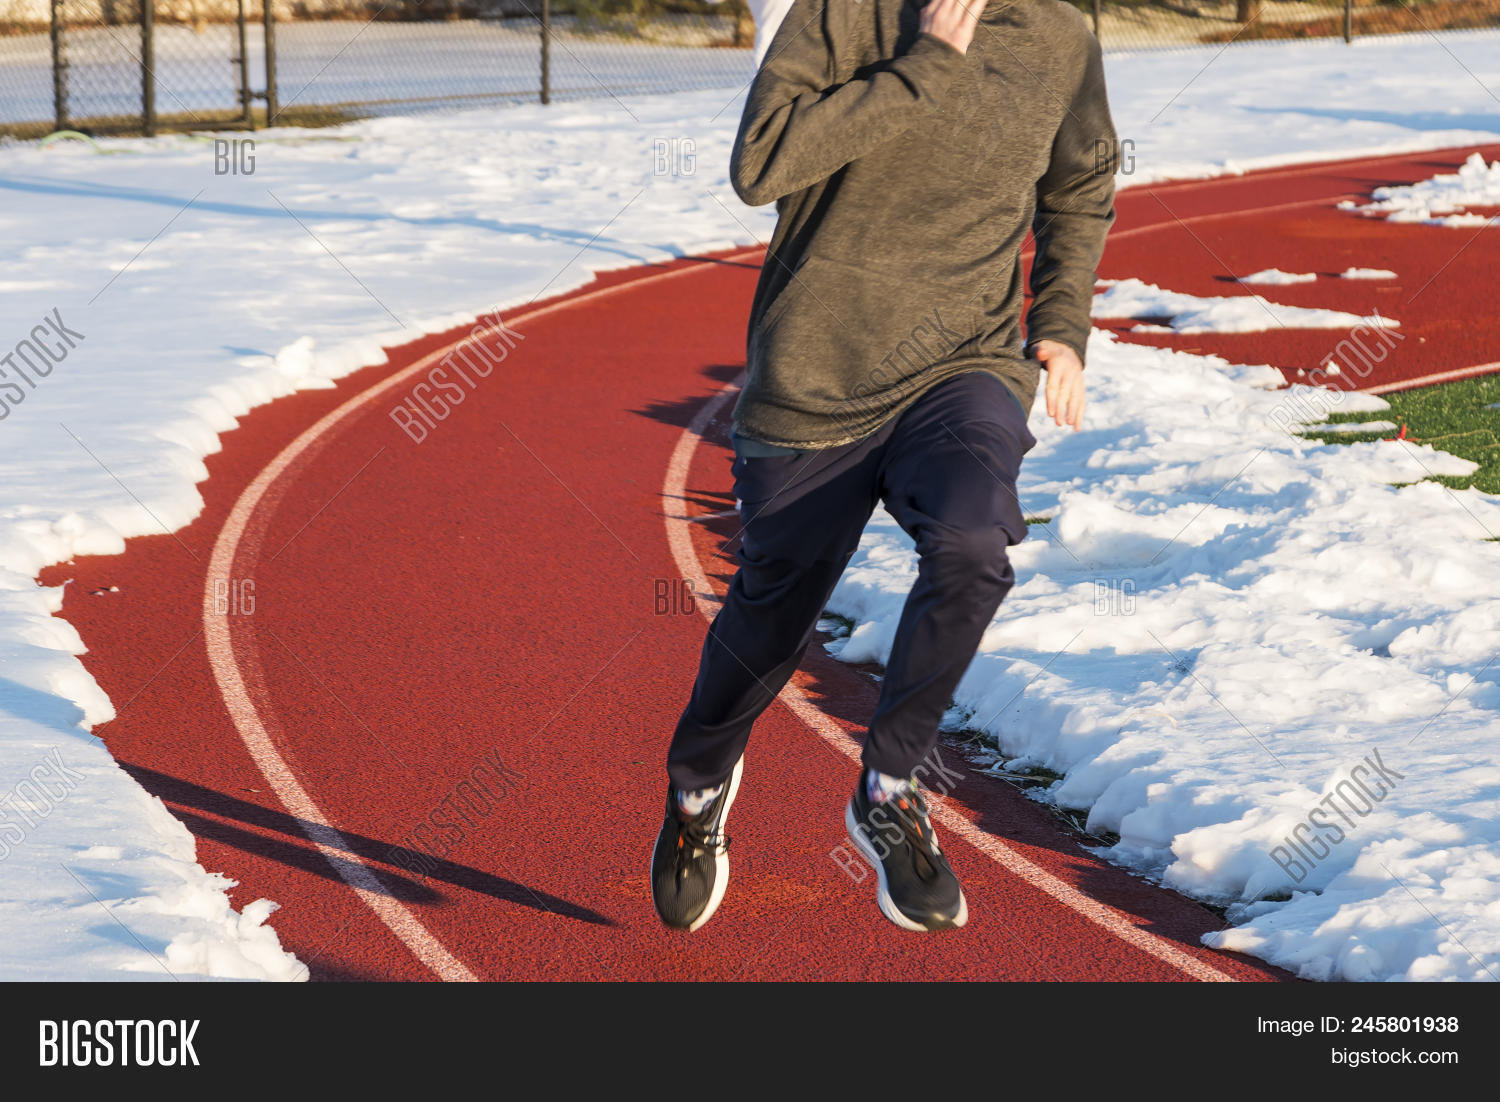 A high school boy is running on a track in lane one with the rest of the track covered with snow during winter track and field practice.